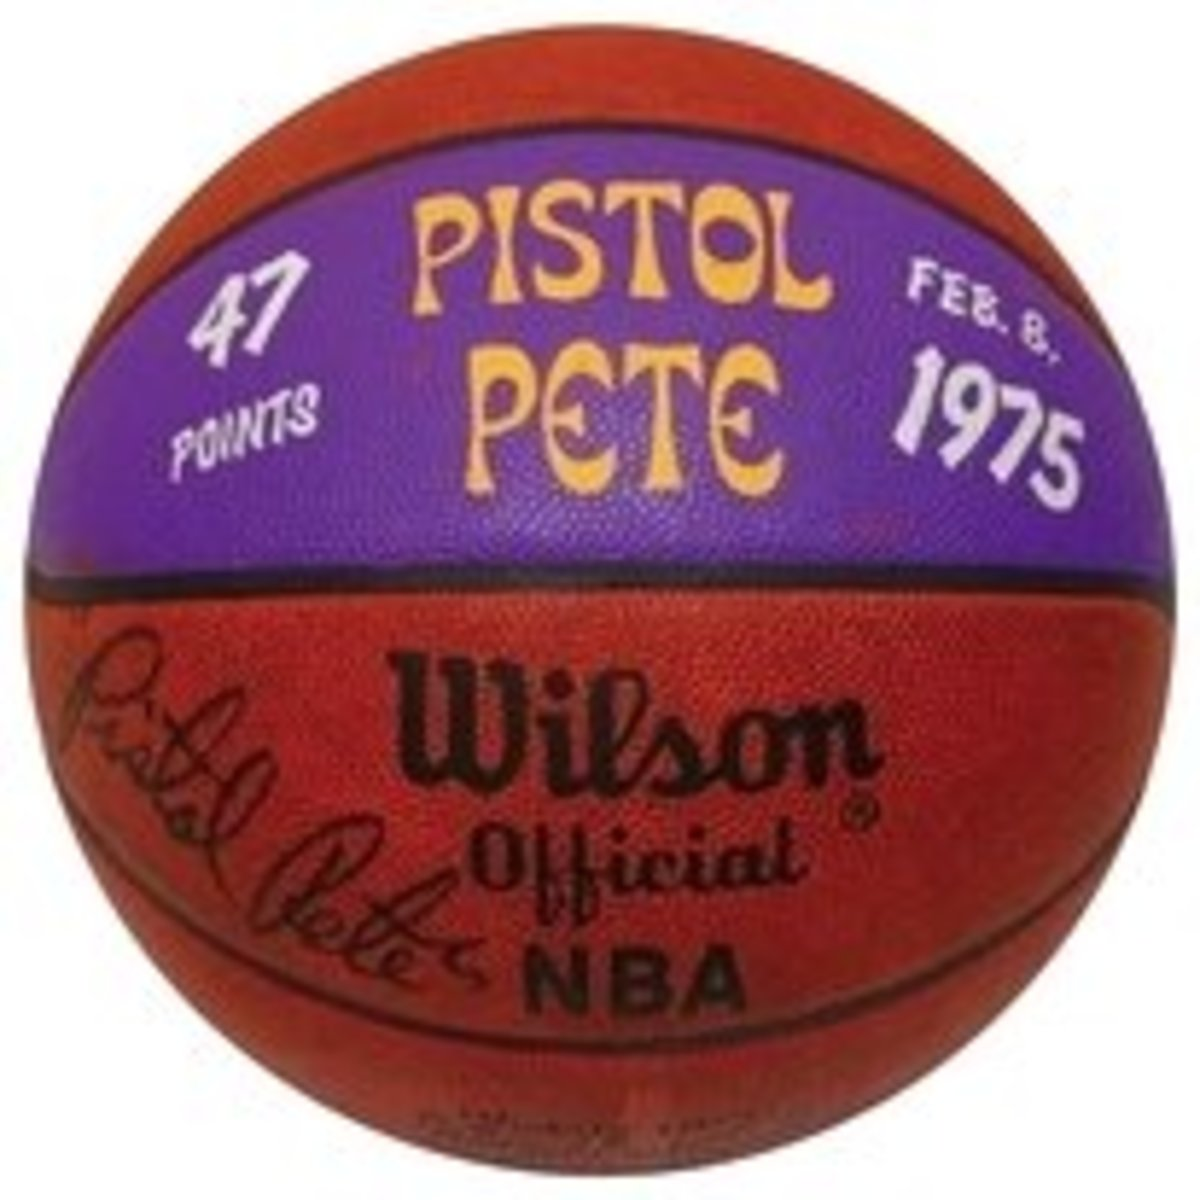 Pete Maravich 47 points ball 1975